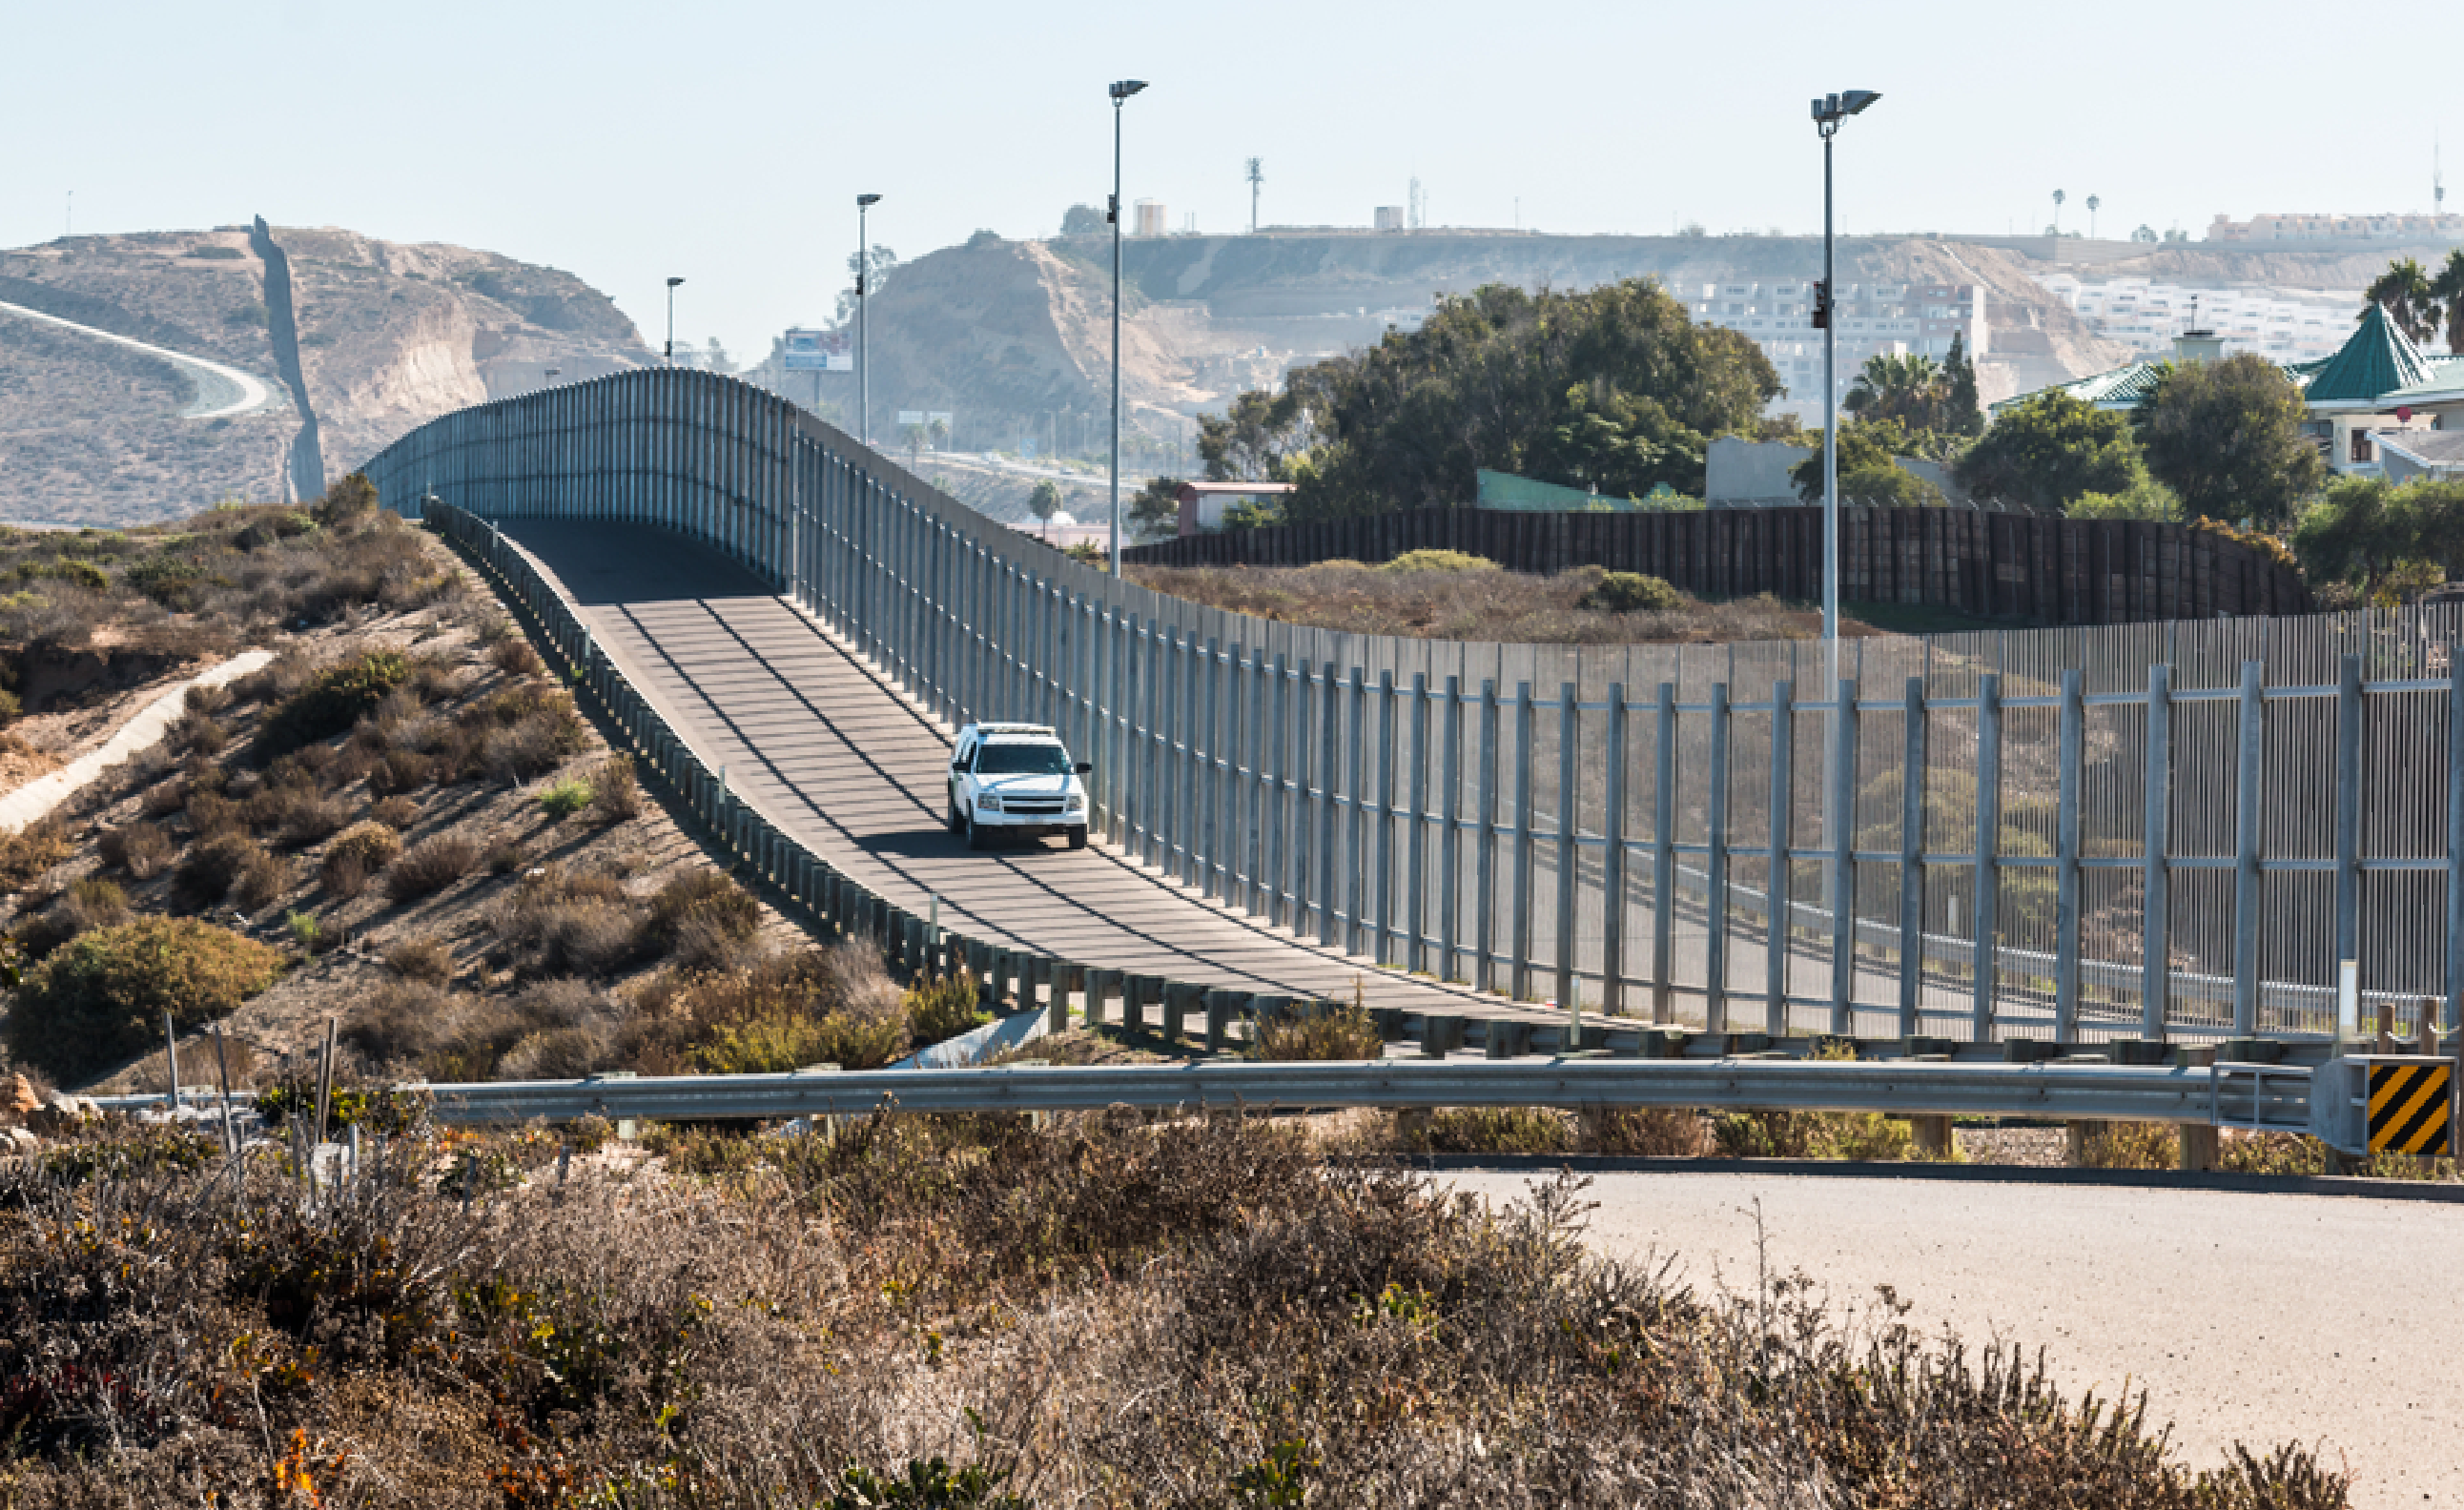 car-patrolling-us-mexico-border